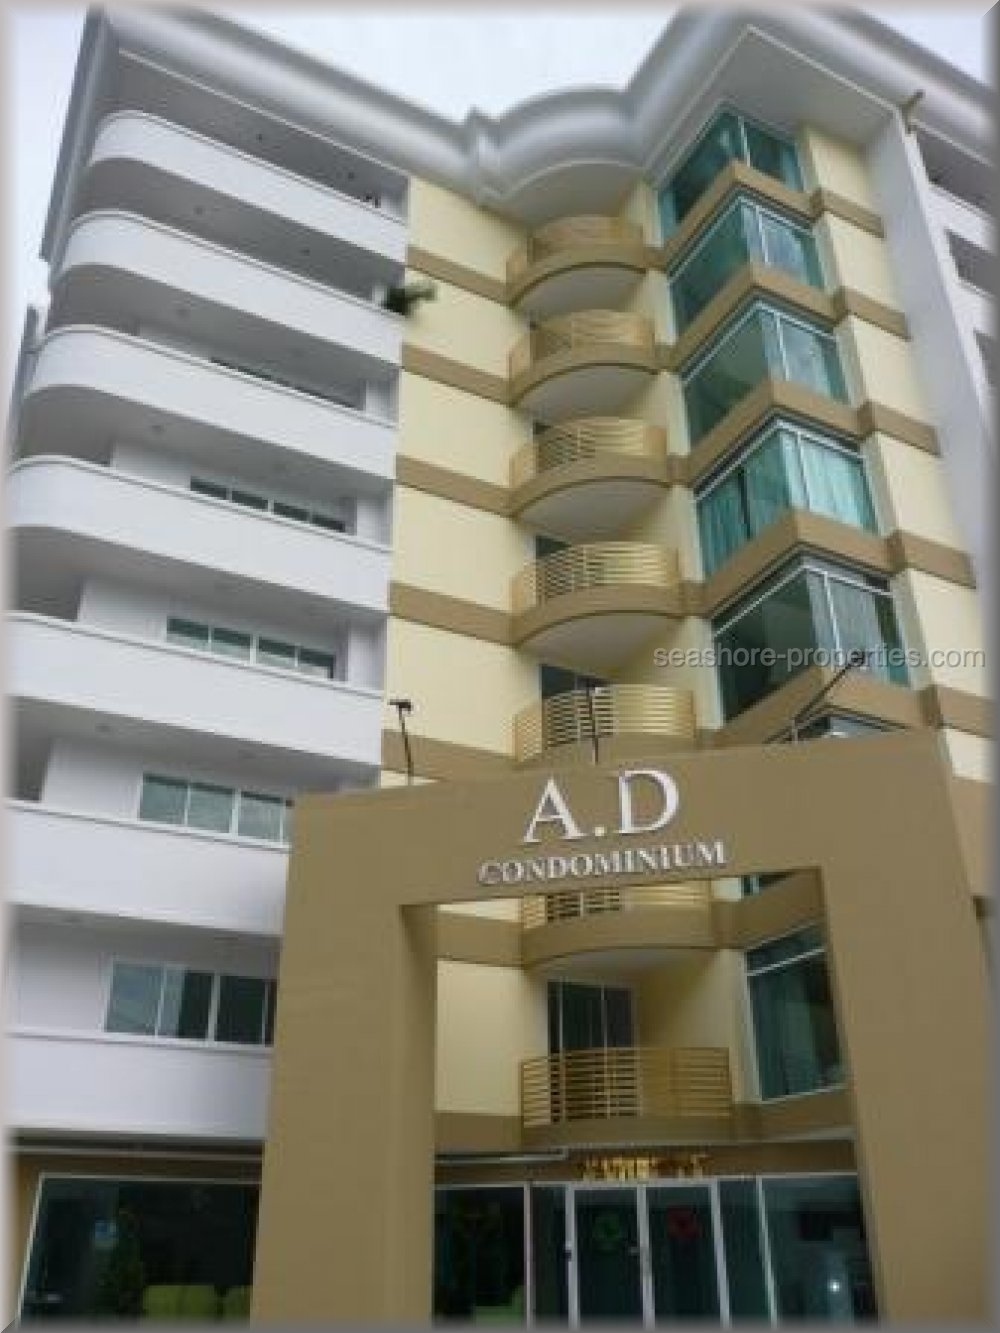 AD Condominium Hyatt  to rent in Wong Amat